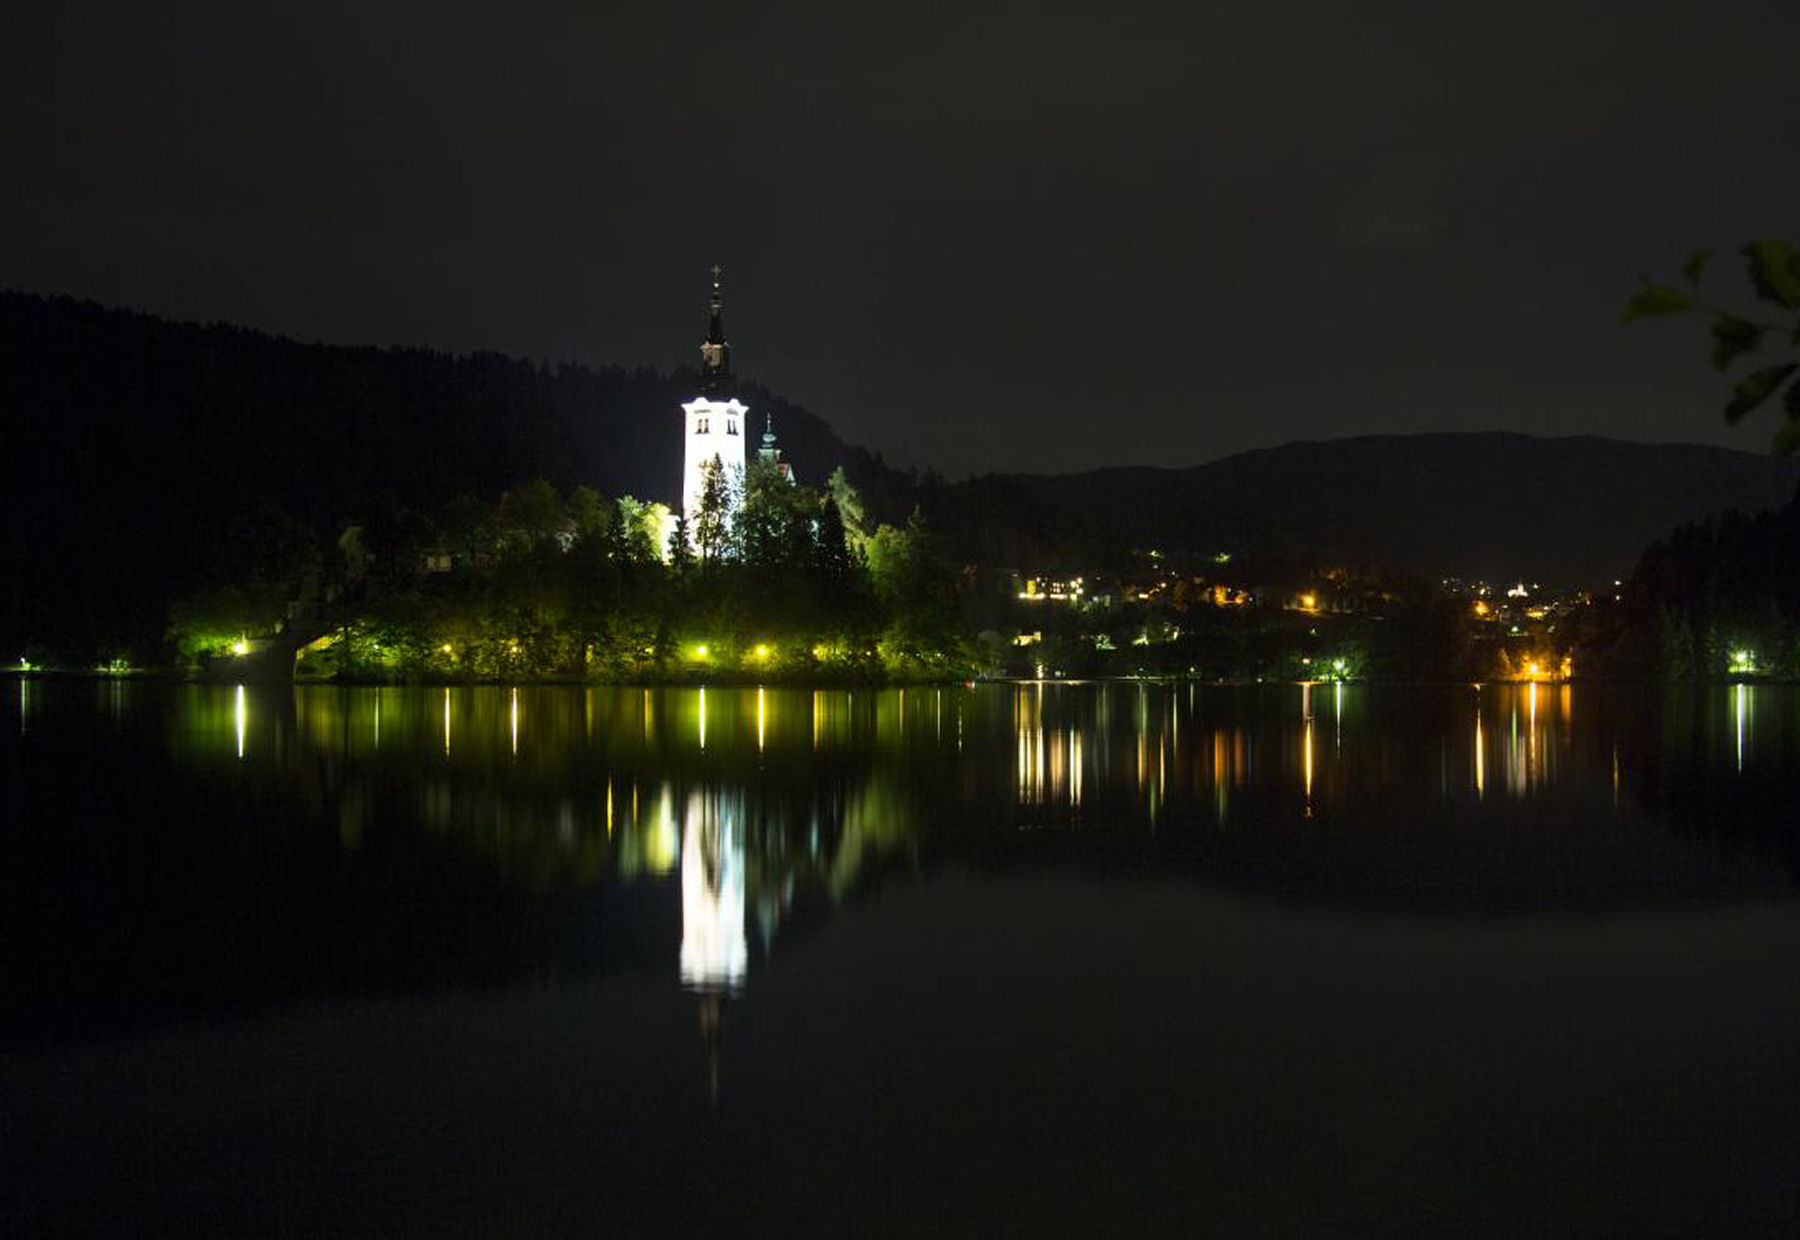 Night shot of Bled Island on Lake Bled in Slovenia